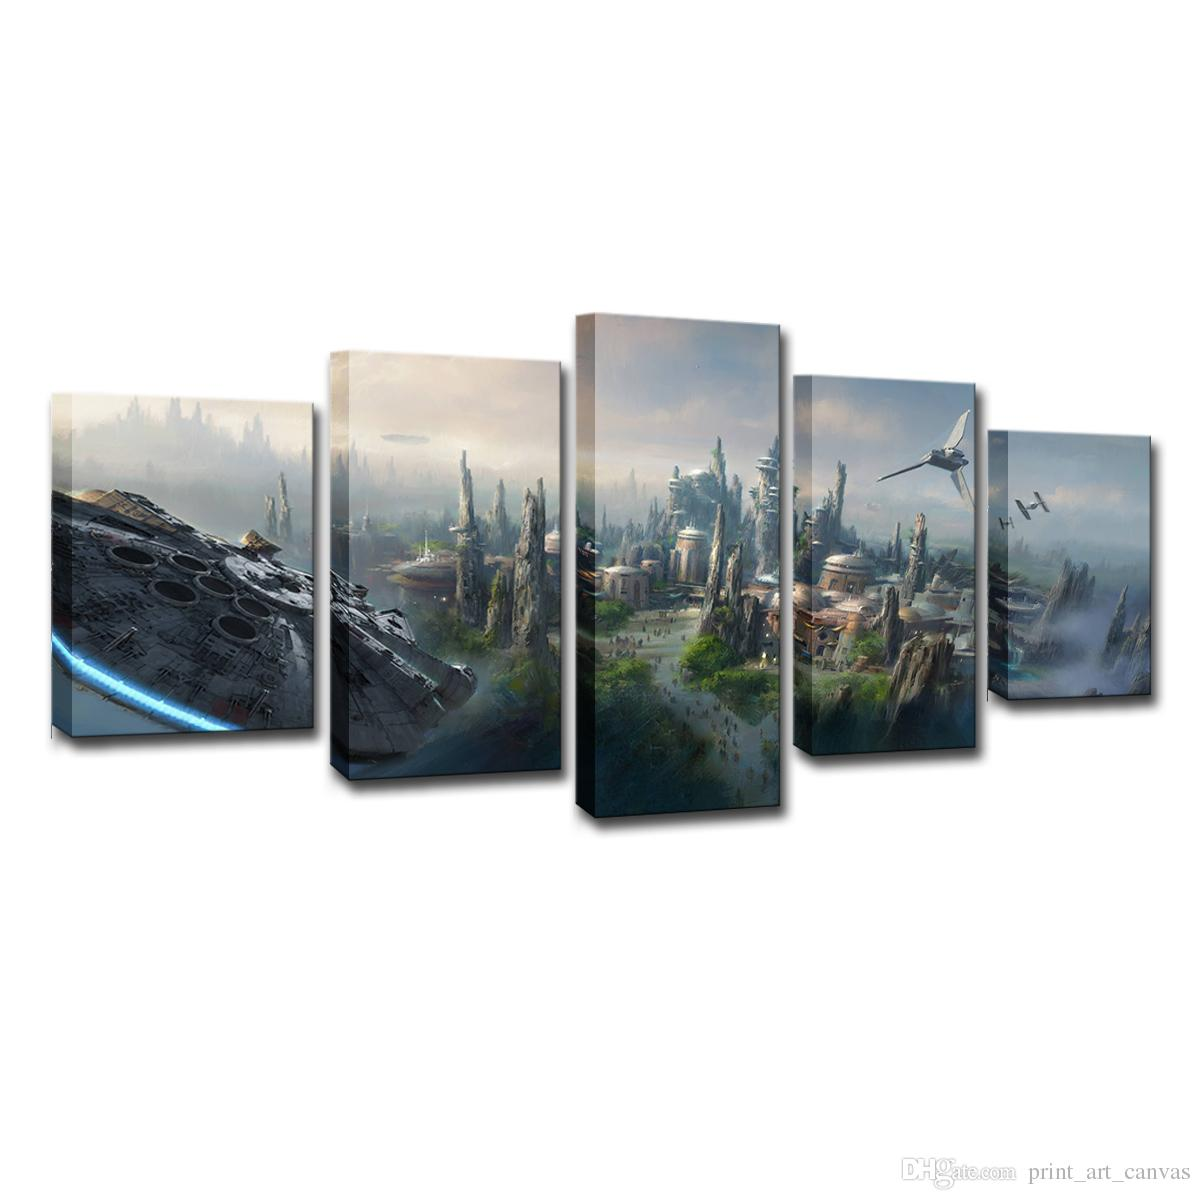 a0f6b08052a 2019 Canvas Painting Wall Art HD Prints Pictures Wars Scenery Millennium Falcon  Poster Home Decor Living Room From Print art canvas